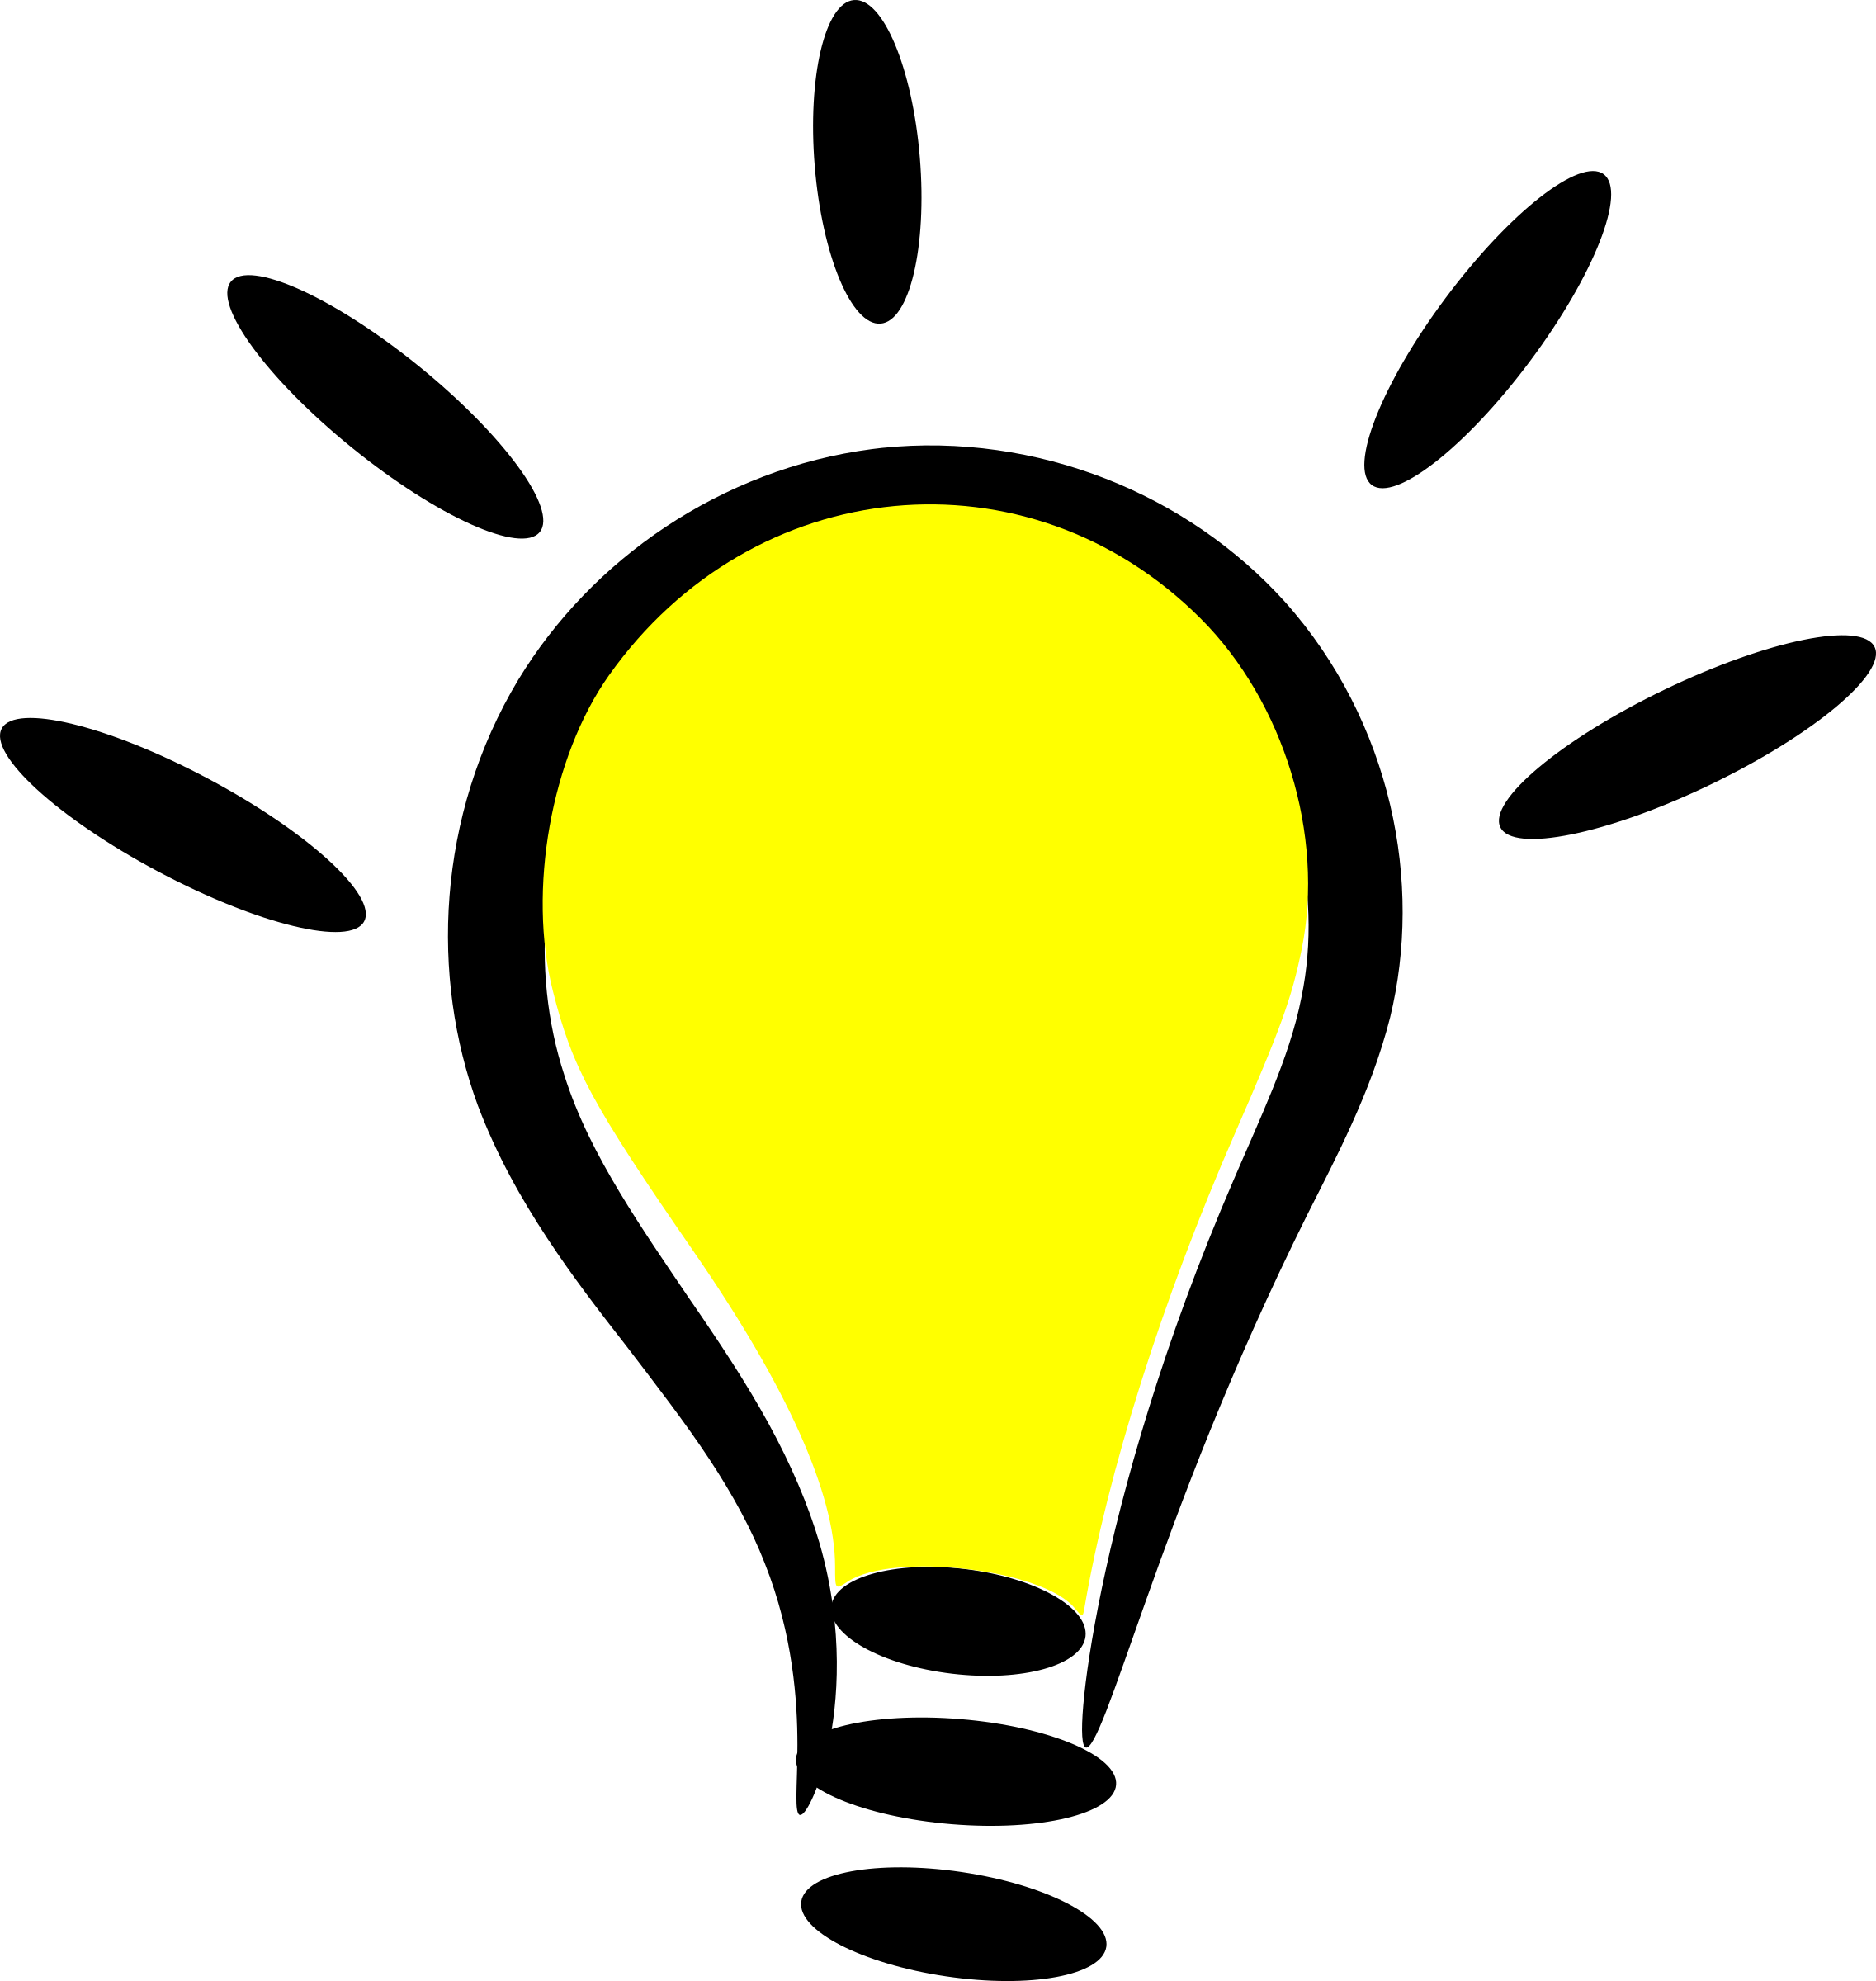 Light Bulb PNG File - Light Bulb PNG